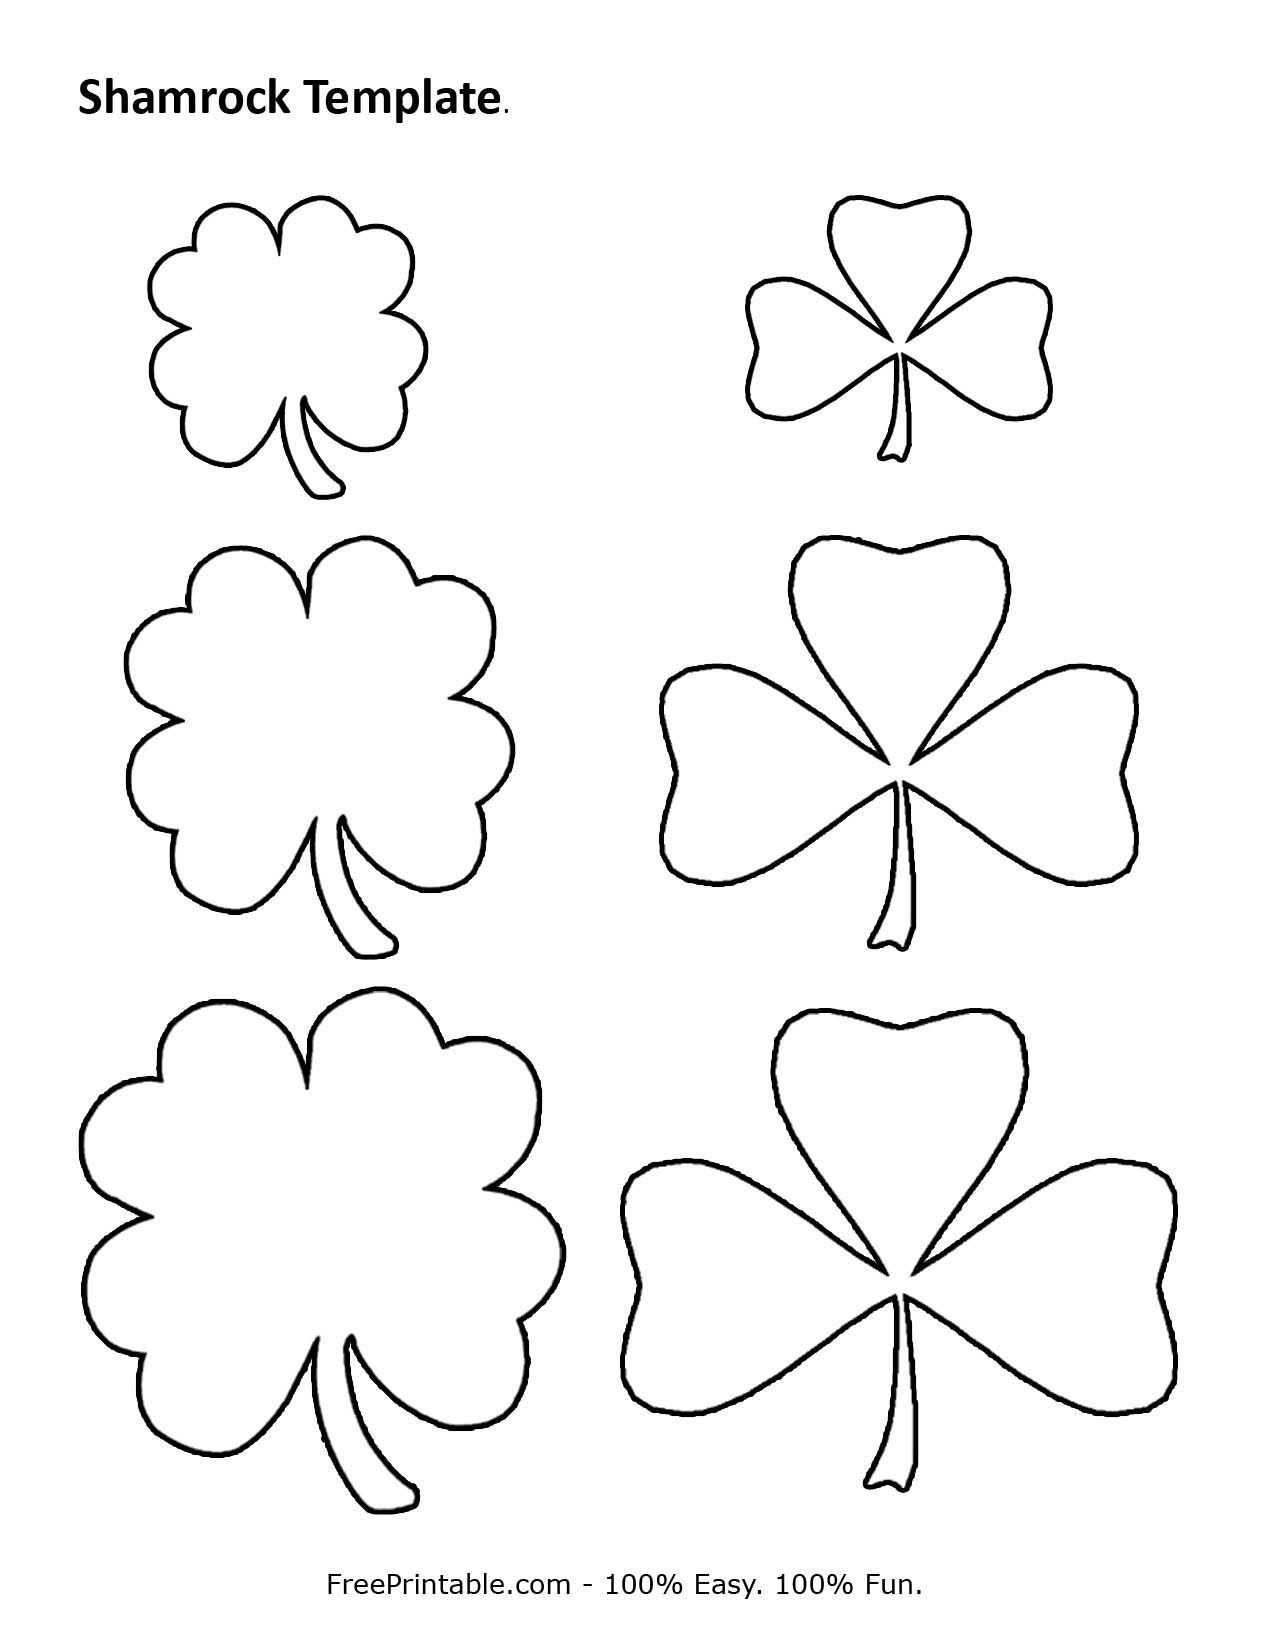 Customize Your Free Printable Shamrock Template | Home | Shamrock - Free Printable Shamrocks